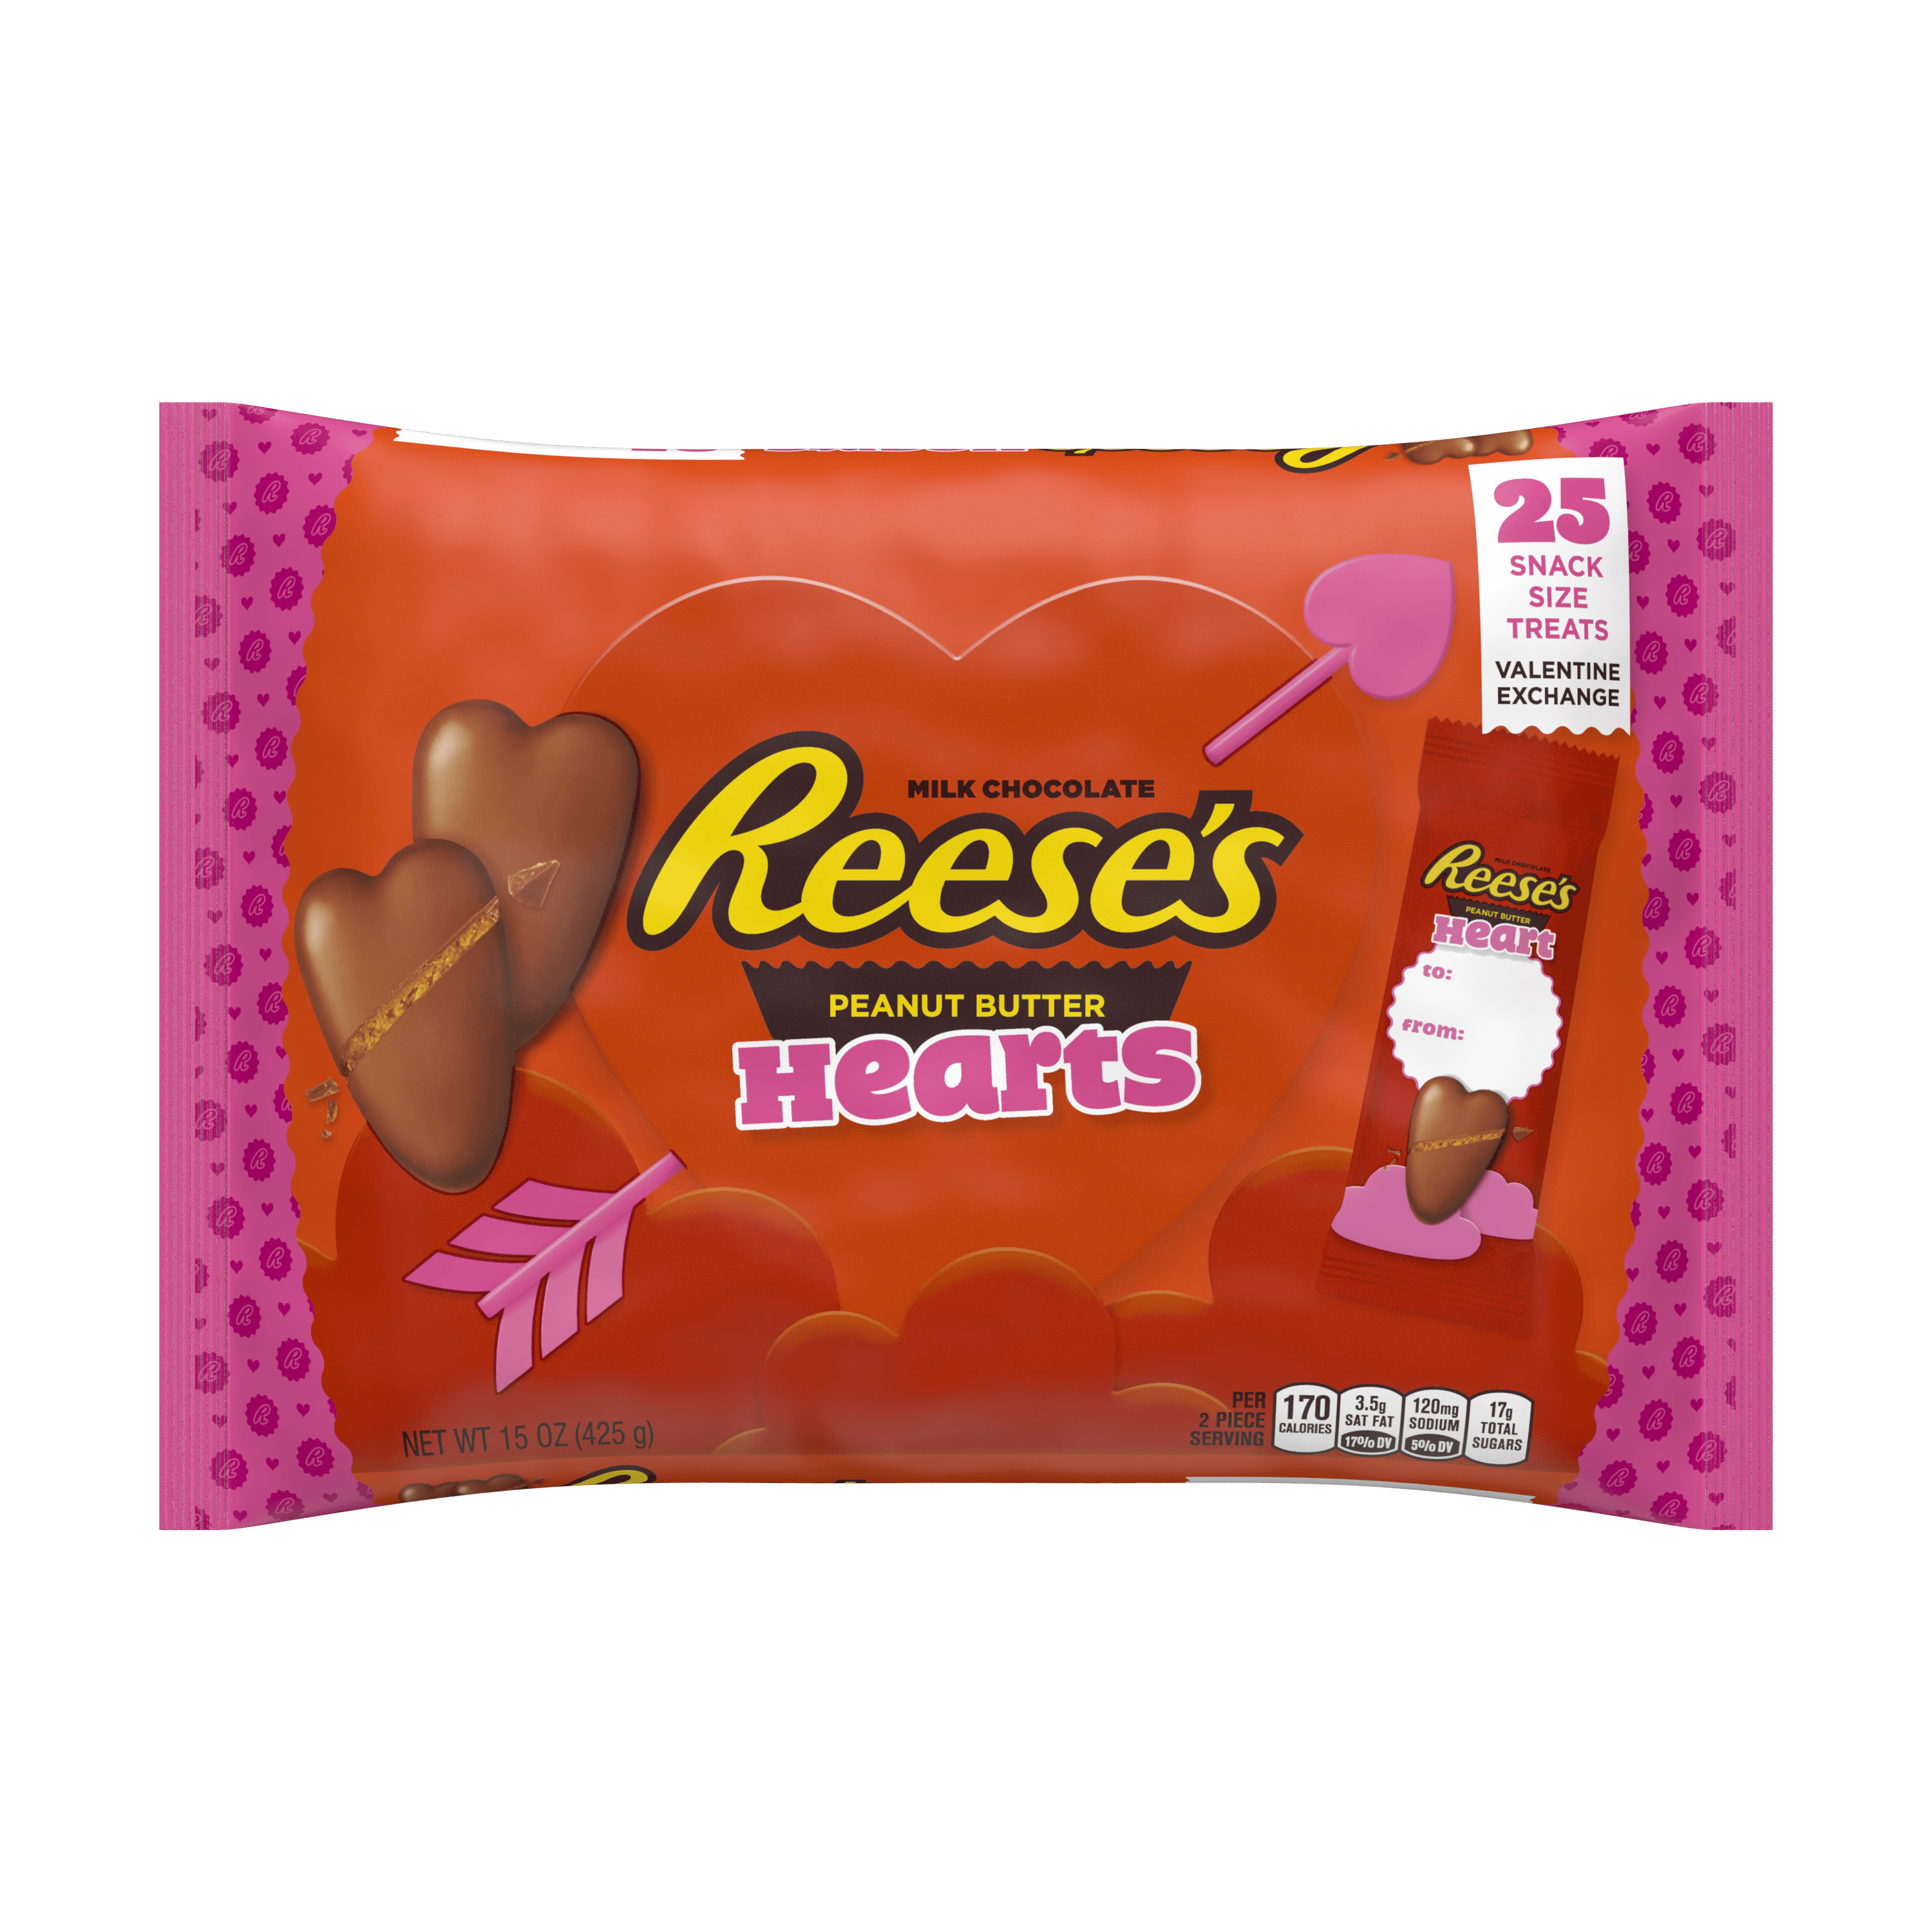 Reese's, Valentine Exchange Chocolate and Peanut Butter Hearts Candy, 25 Count, 15 Oz.